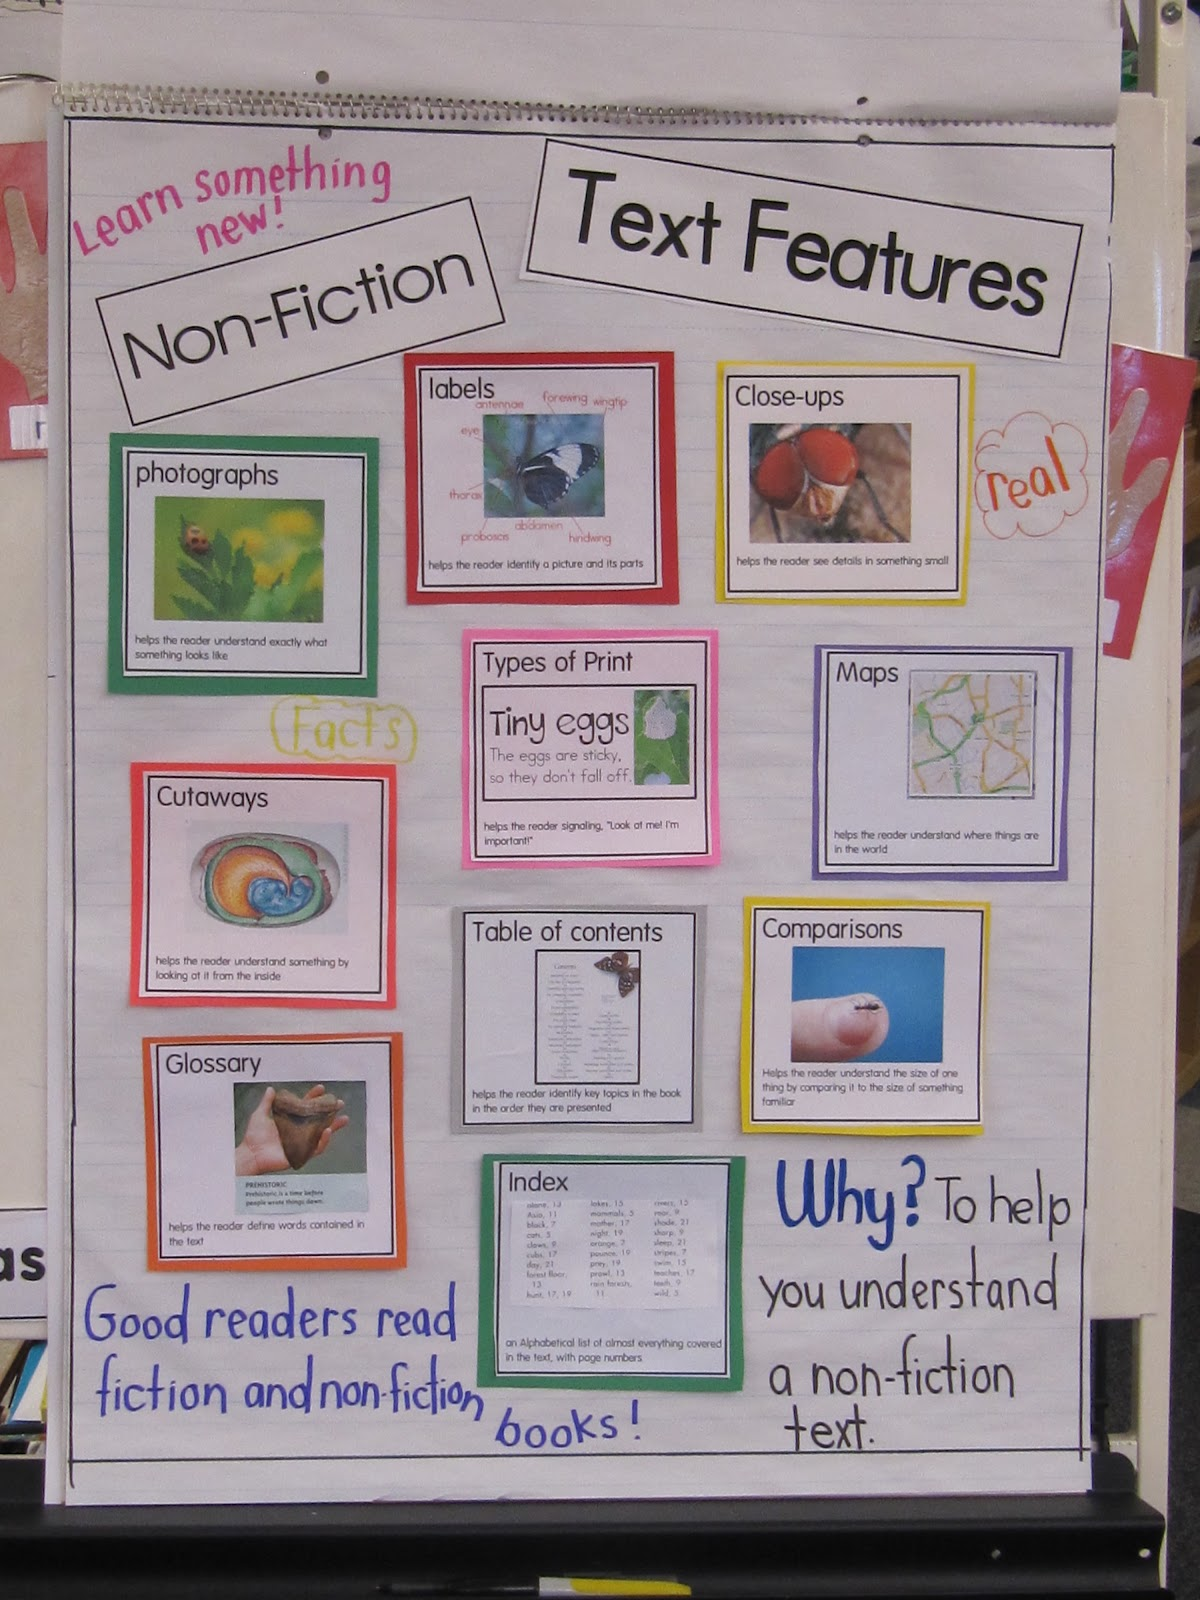 Nonfiction Text Features Worksheet 3Rd Grade – Nonfiction Text Features Worksheet